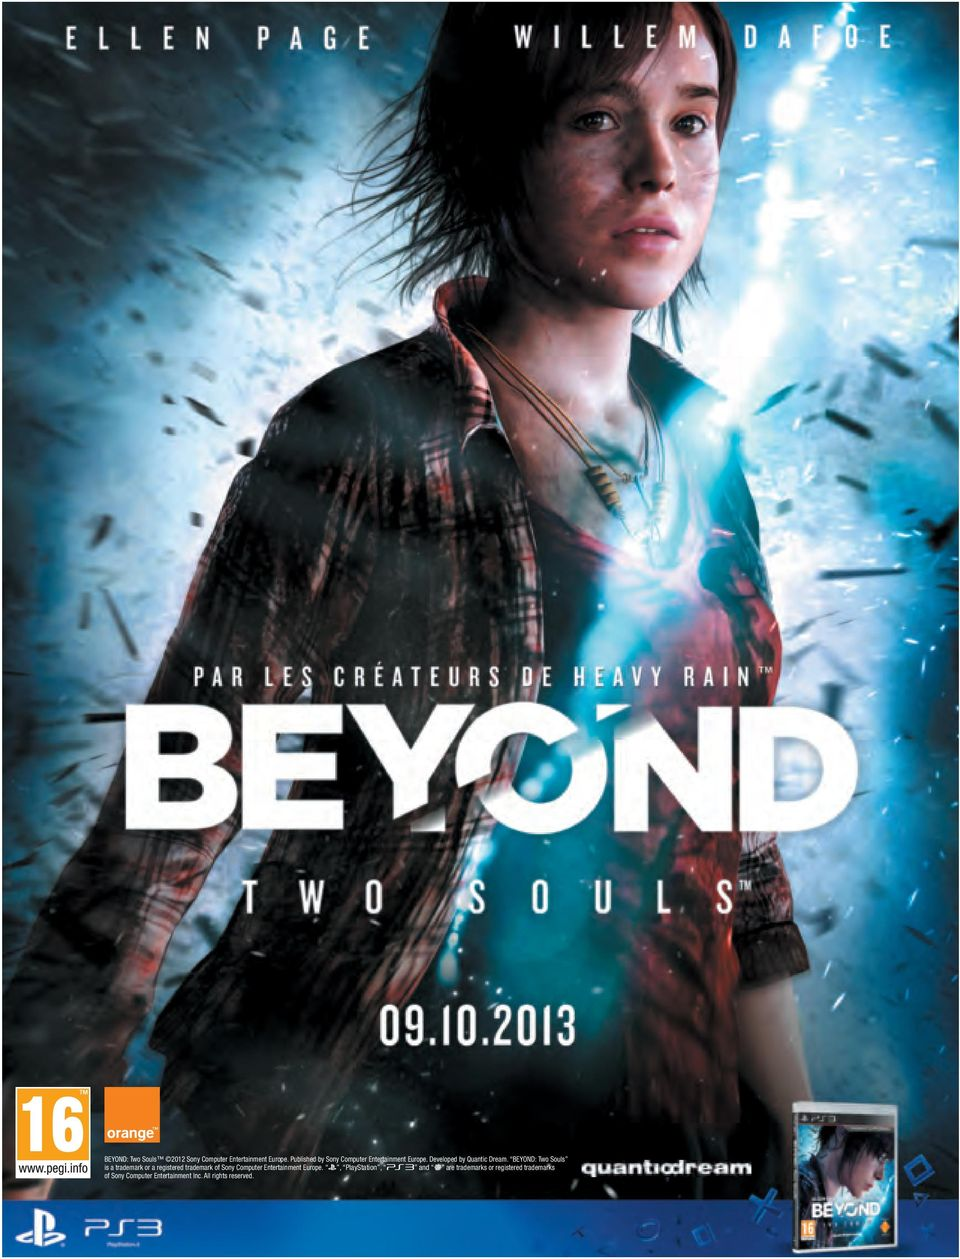 BEYOND: Two Souls is a trademark or a registered trademark of Sony Computer